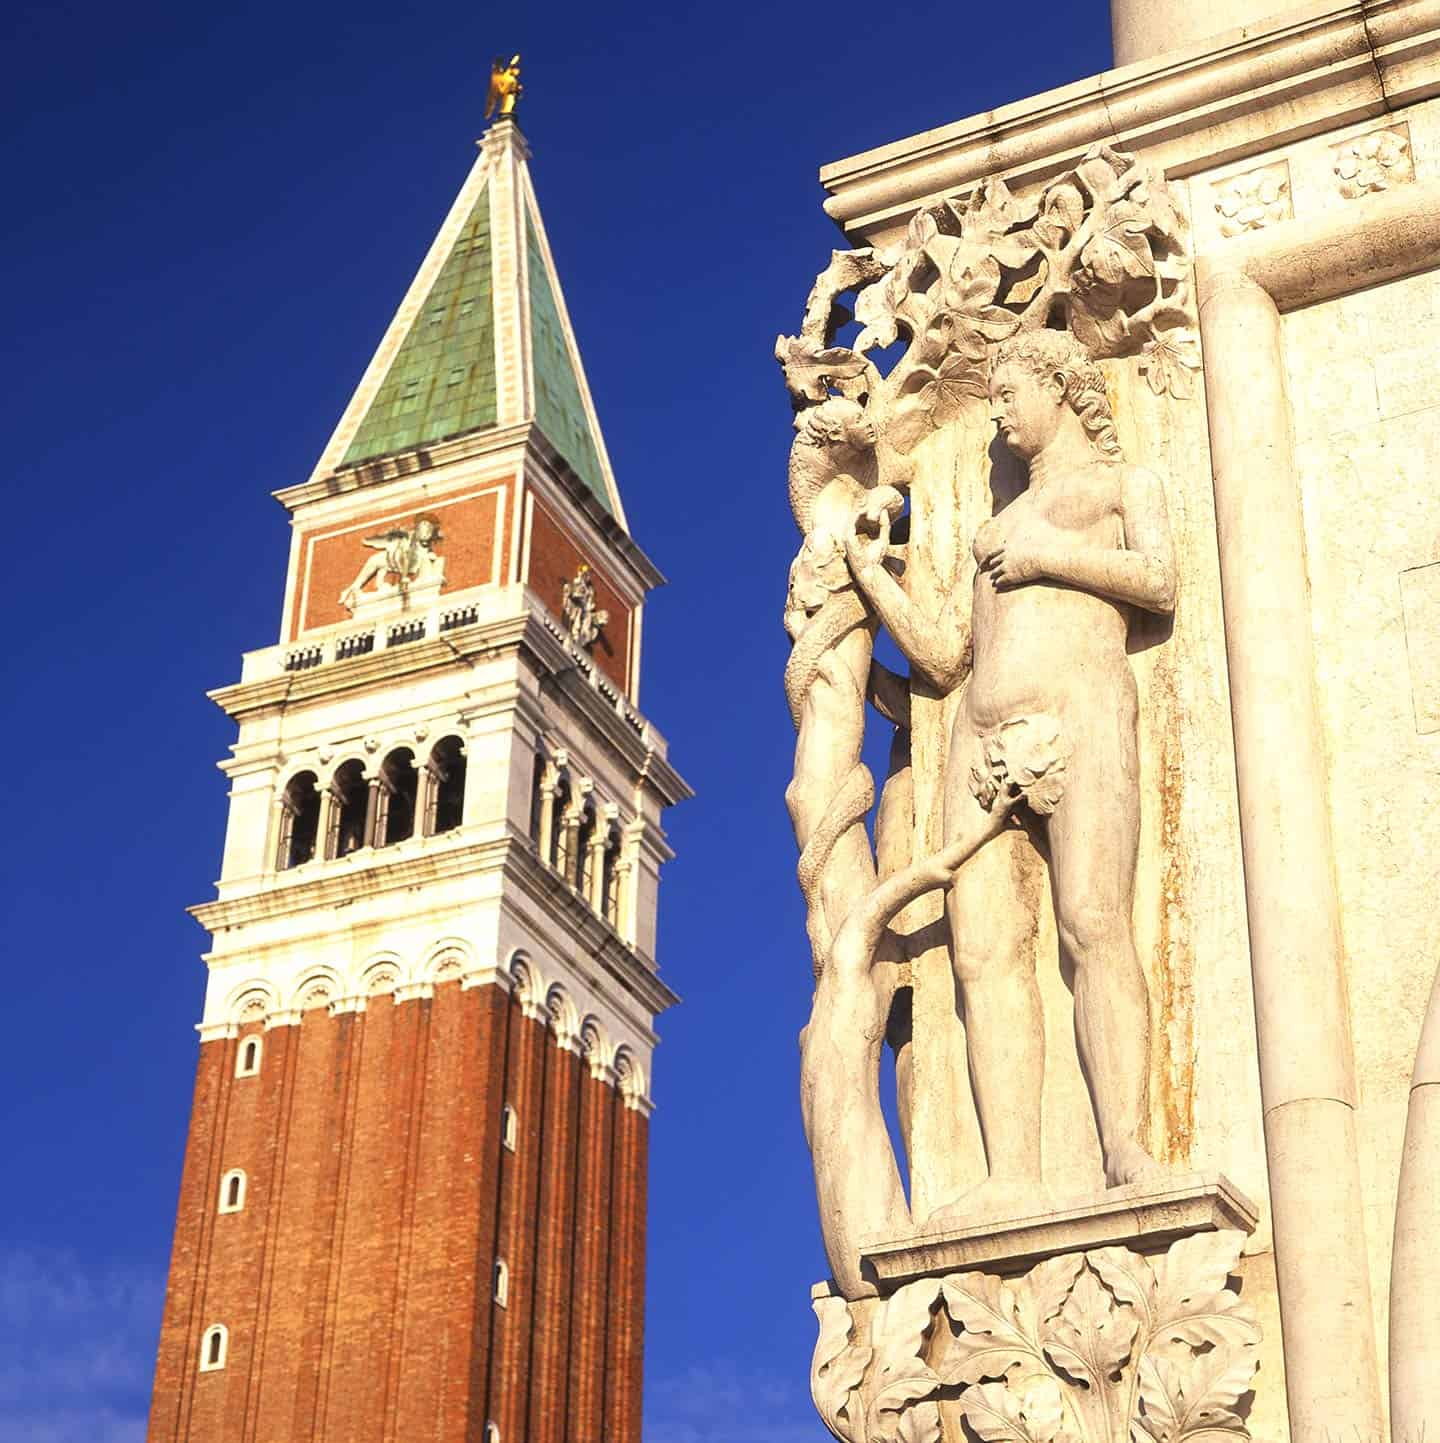 Image of St Mark's Campanile and a statue on the exterior of the Doge's Palace Venice Italy